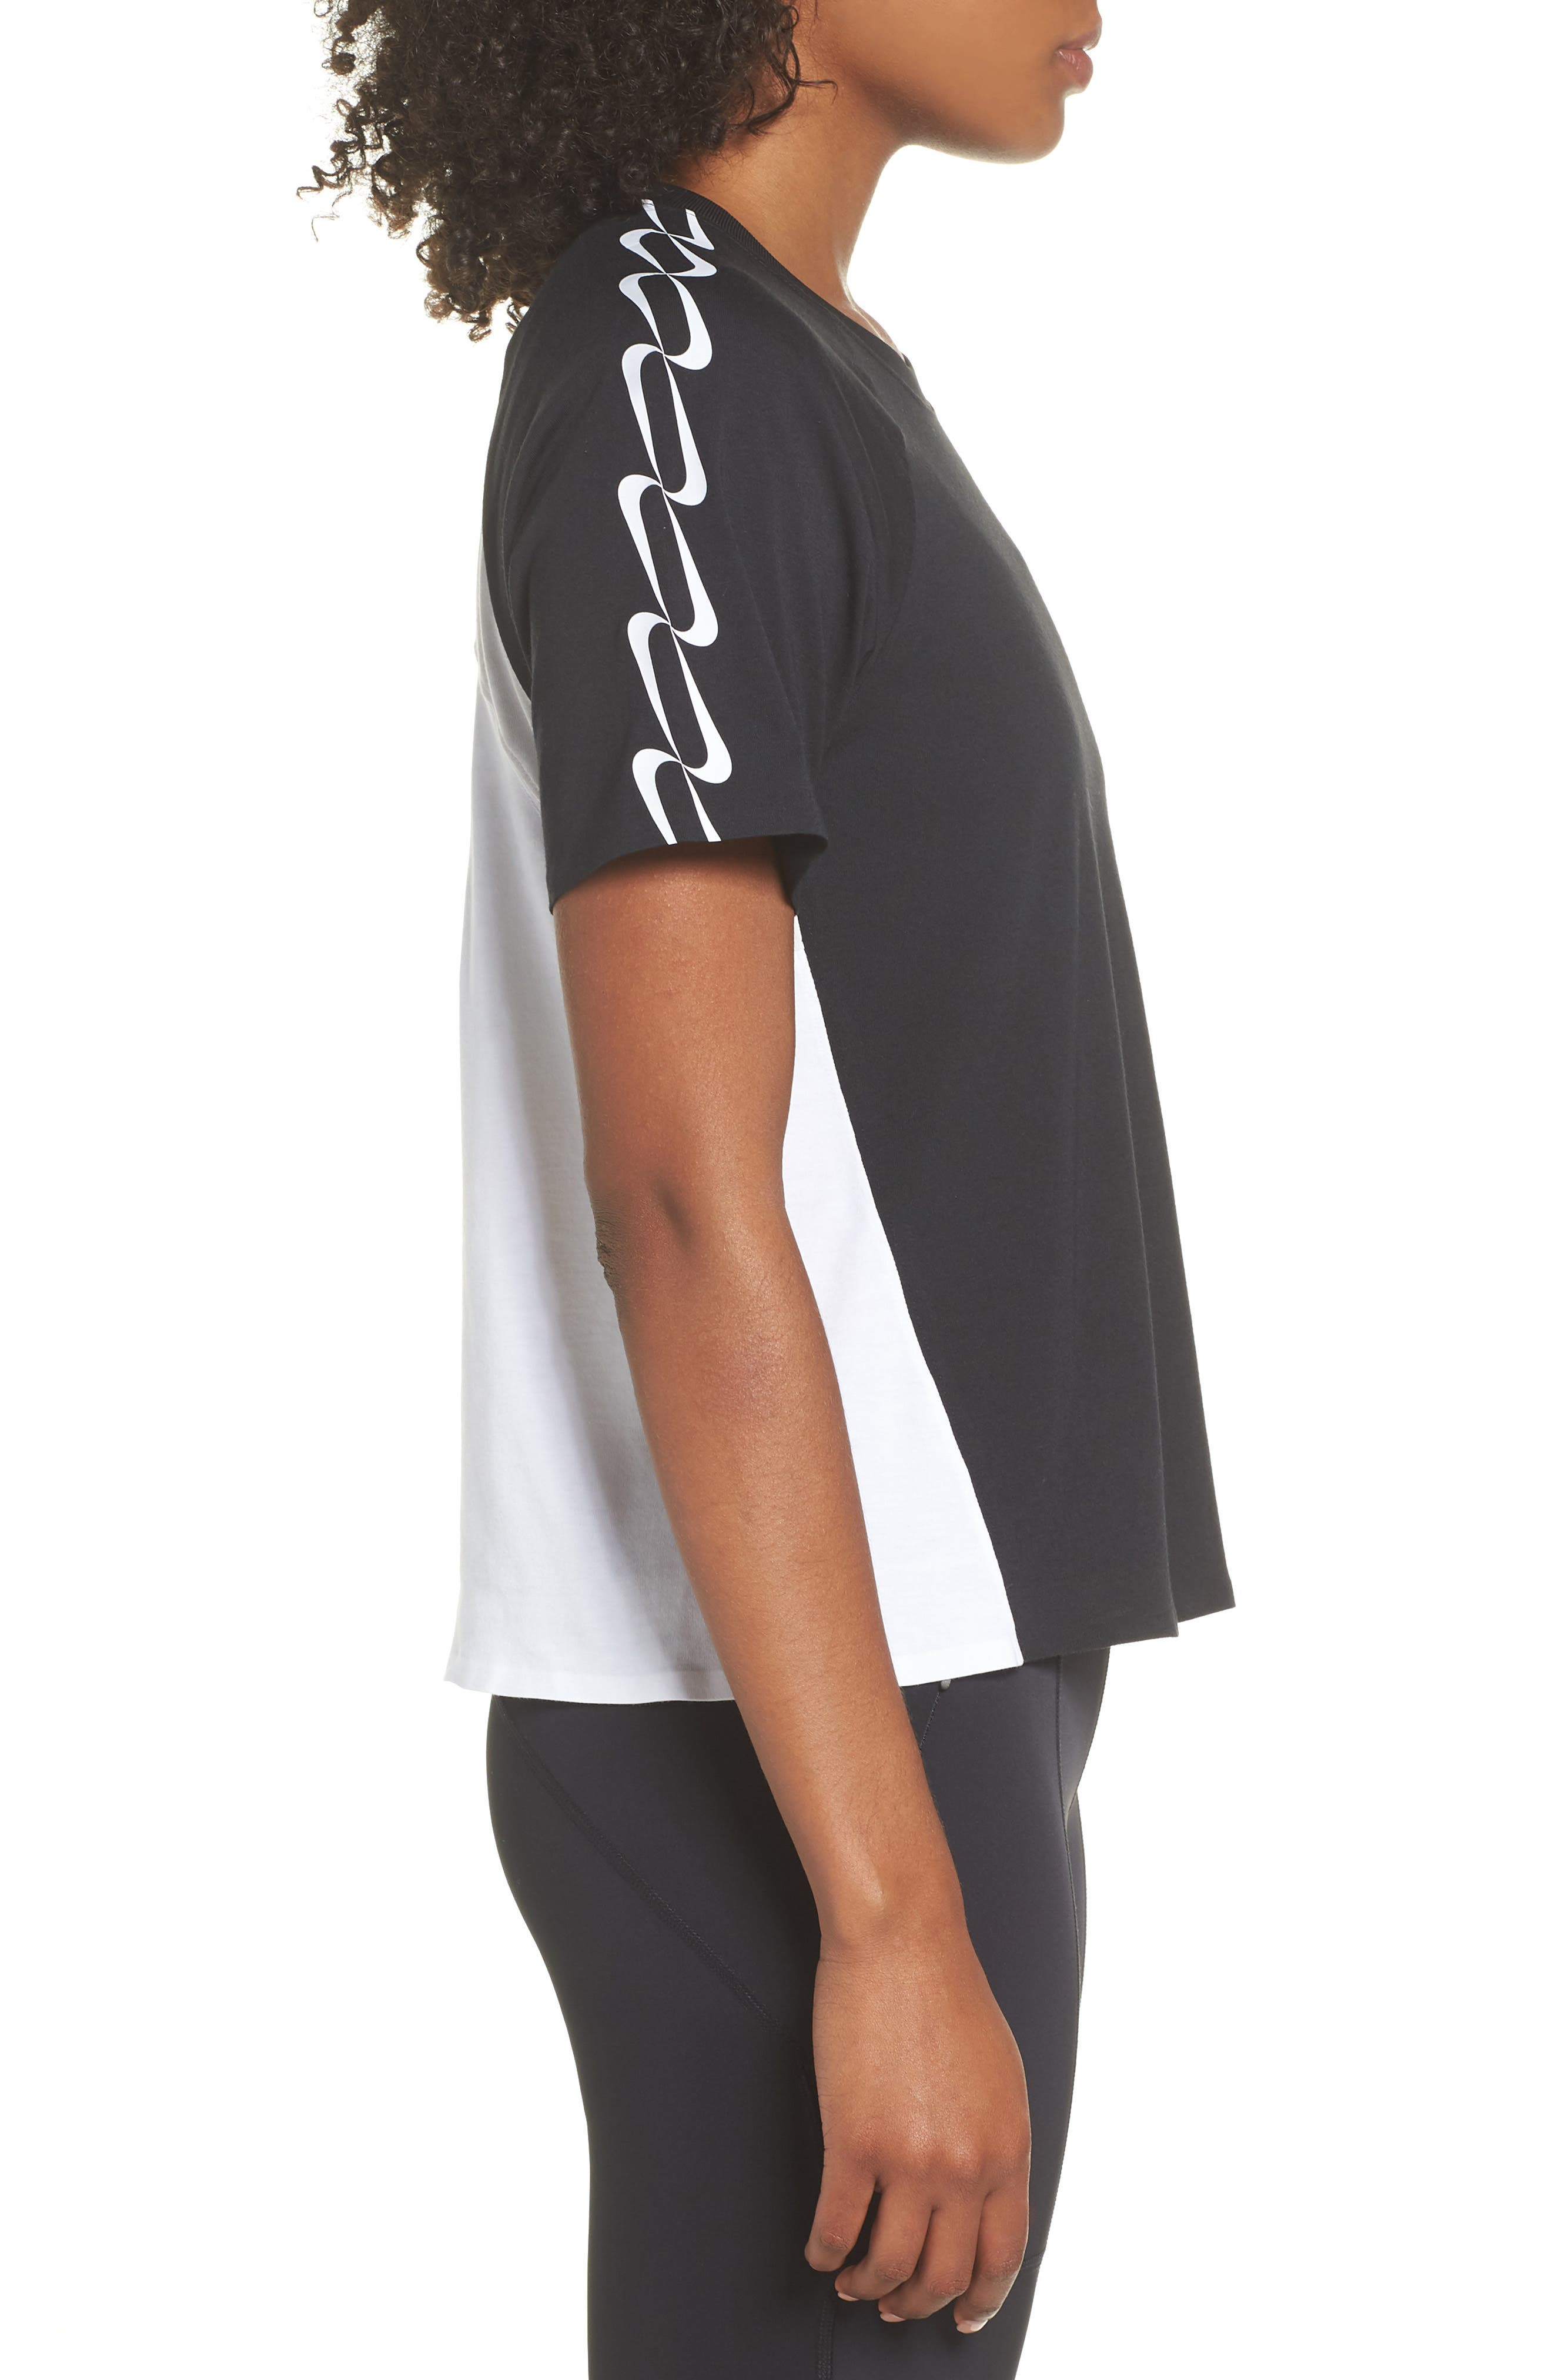 NRG Women's Dri-FIT Short Sleeve Top,                             Alternate thumbnail 3, color,                             Black/ White/ Vast Grey/ Black